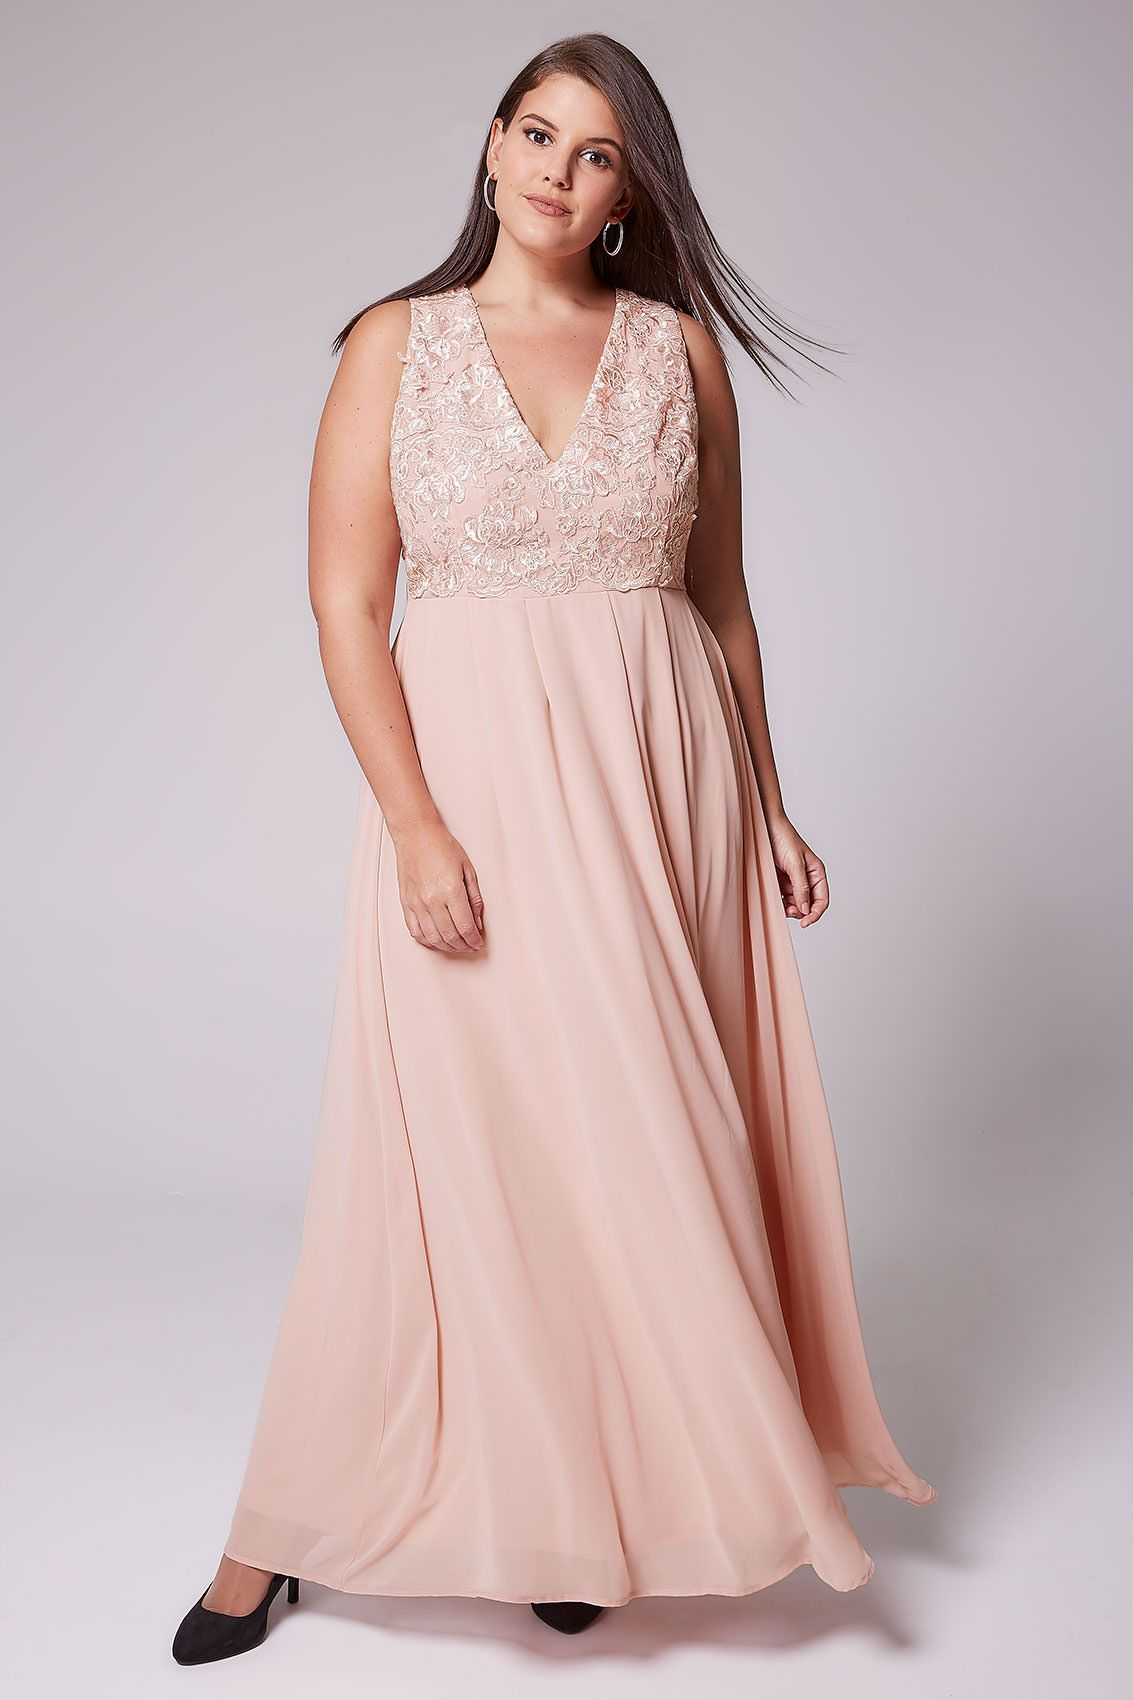 Ax paris curve blush pink maxi dress with lace overlay bodice in